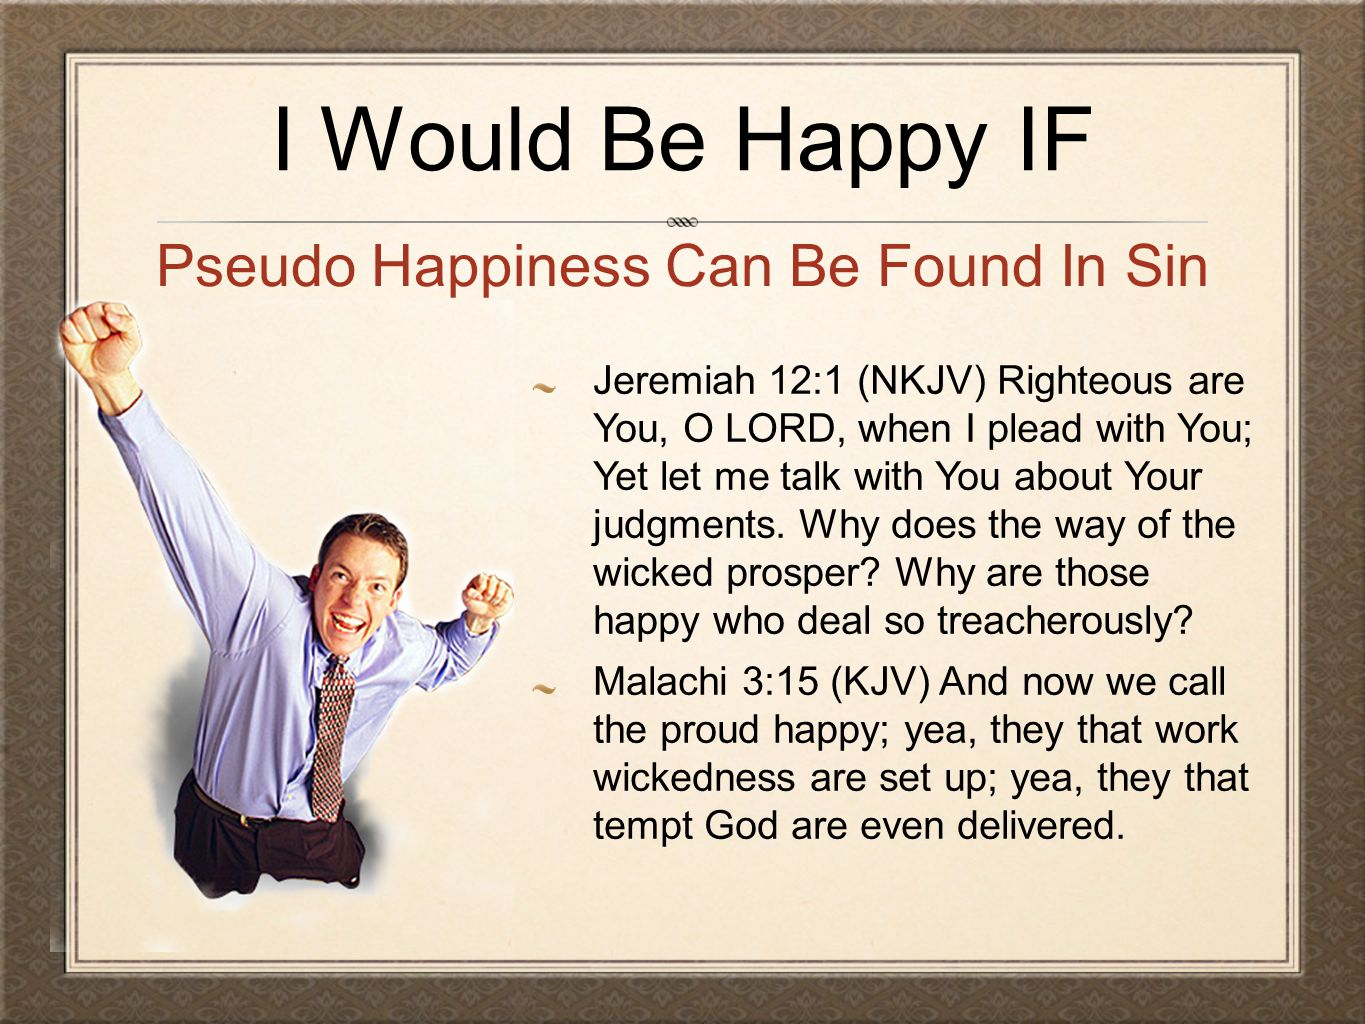 Pseudo Happiness Can Be Found In Sin